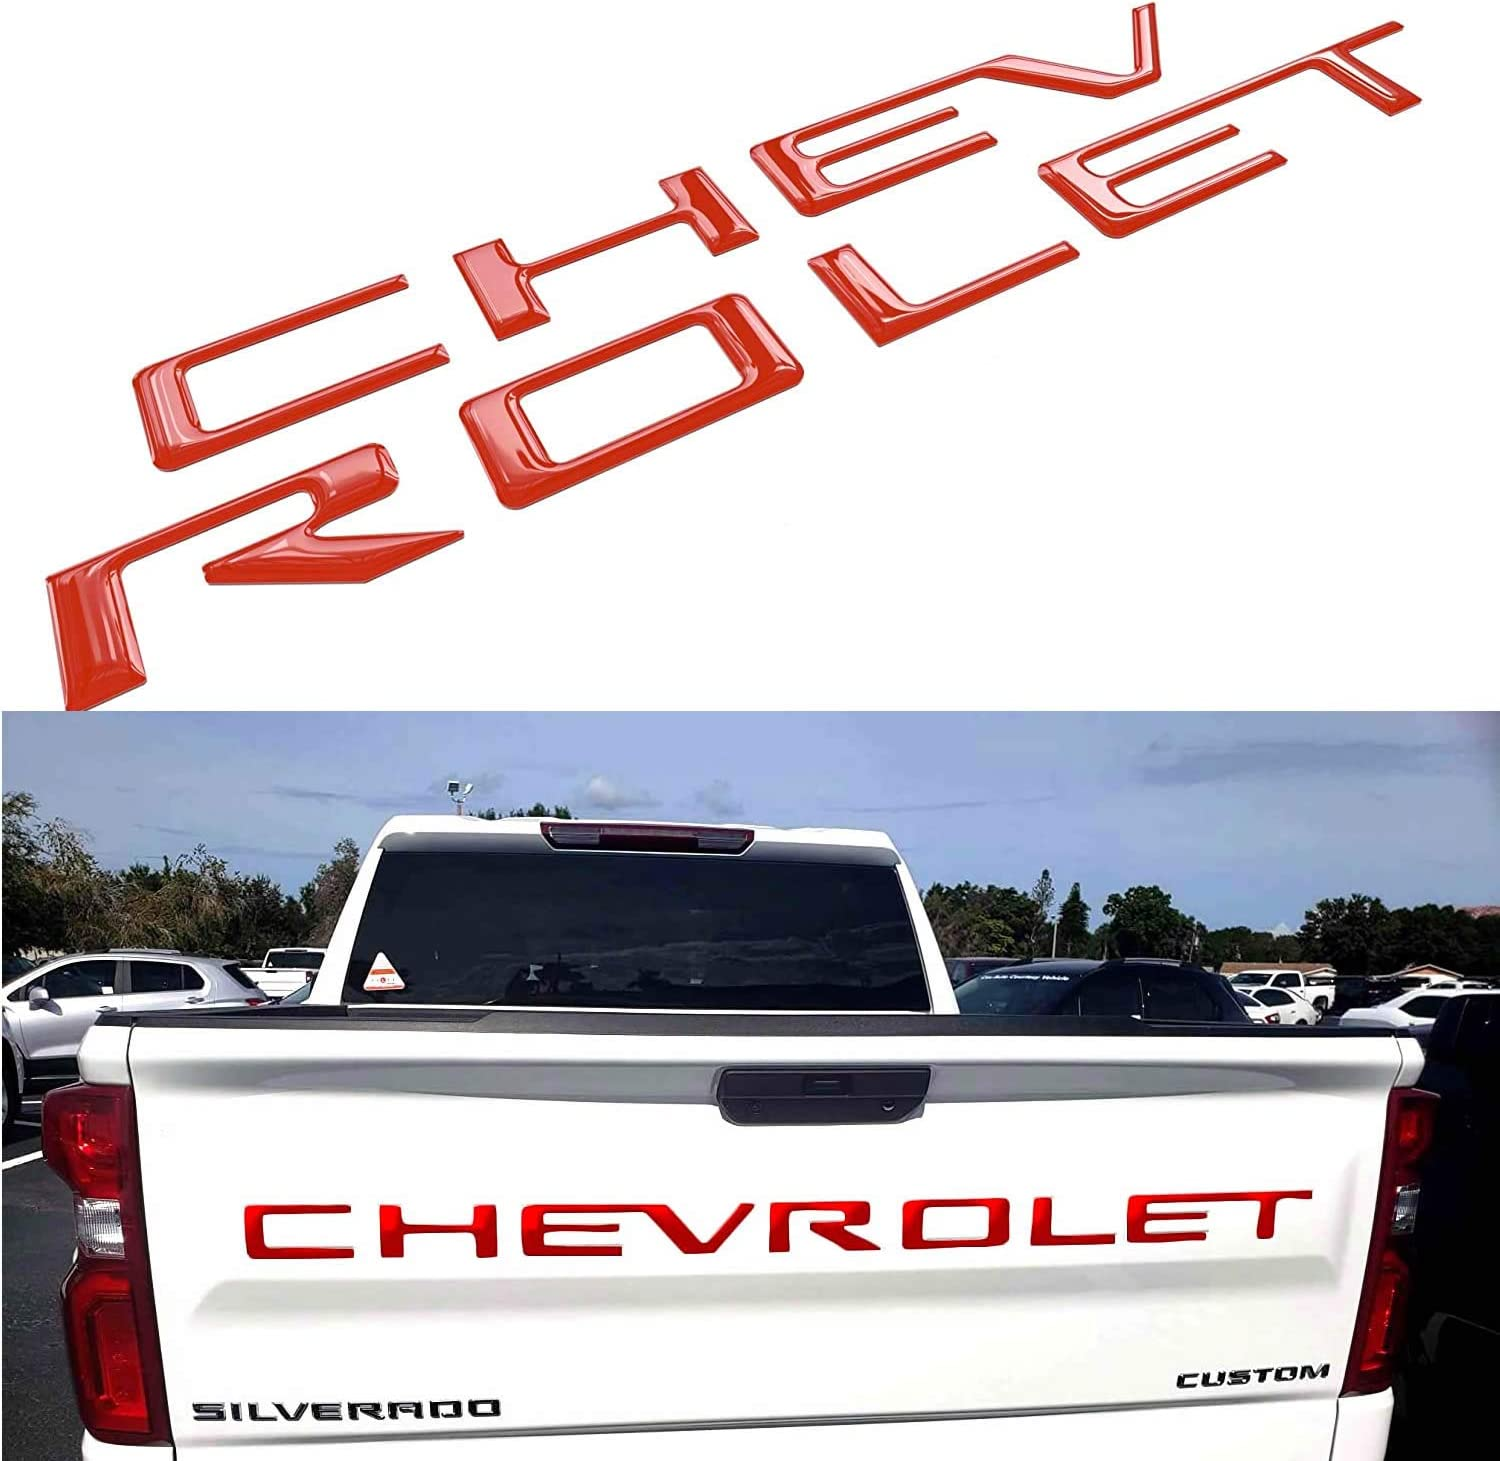 Tailgate Raised Letters Compatible with Silverado 2019 2020 Red Tailgate Emblems Inserts Letters 3D Raised /& Strong Adhesive Decals Letters